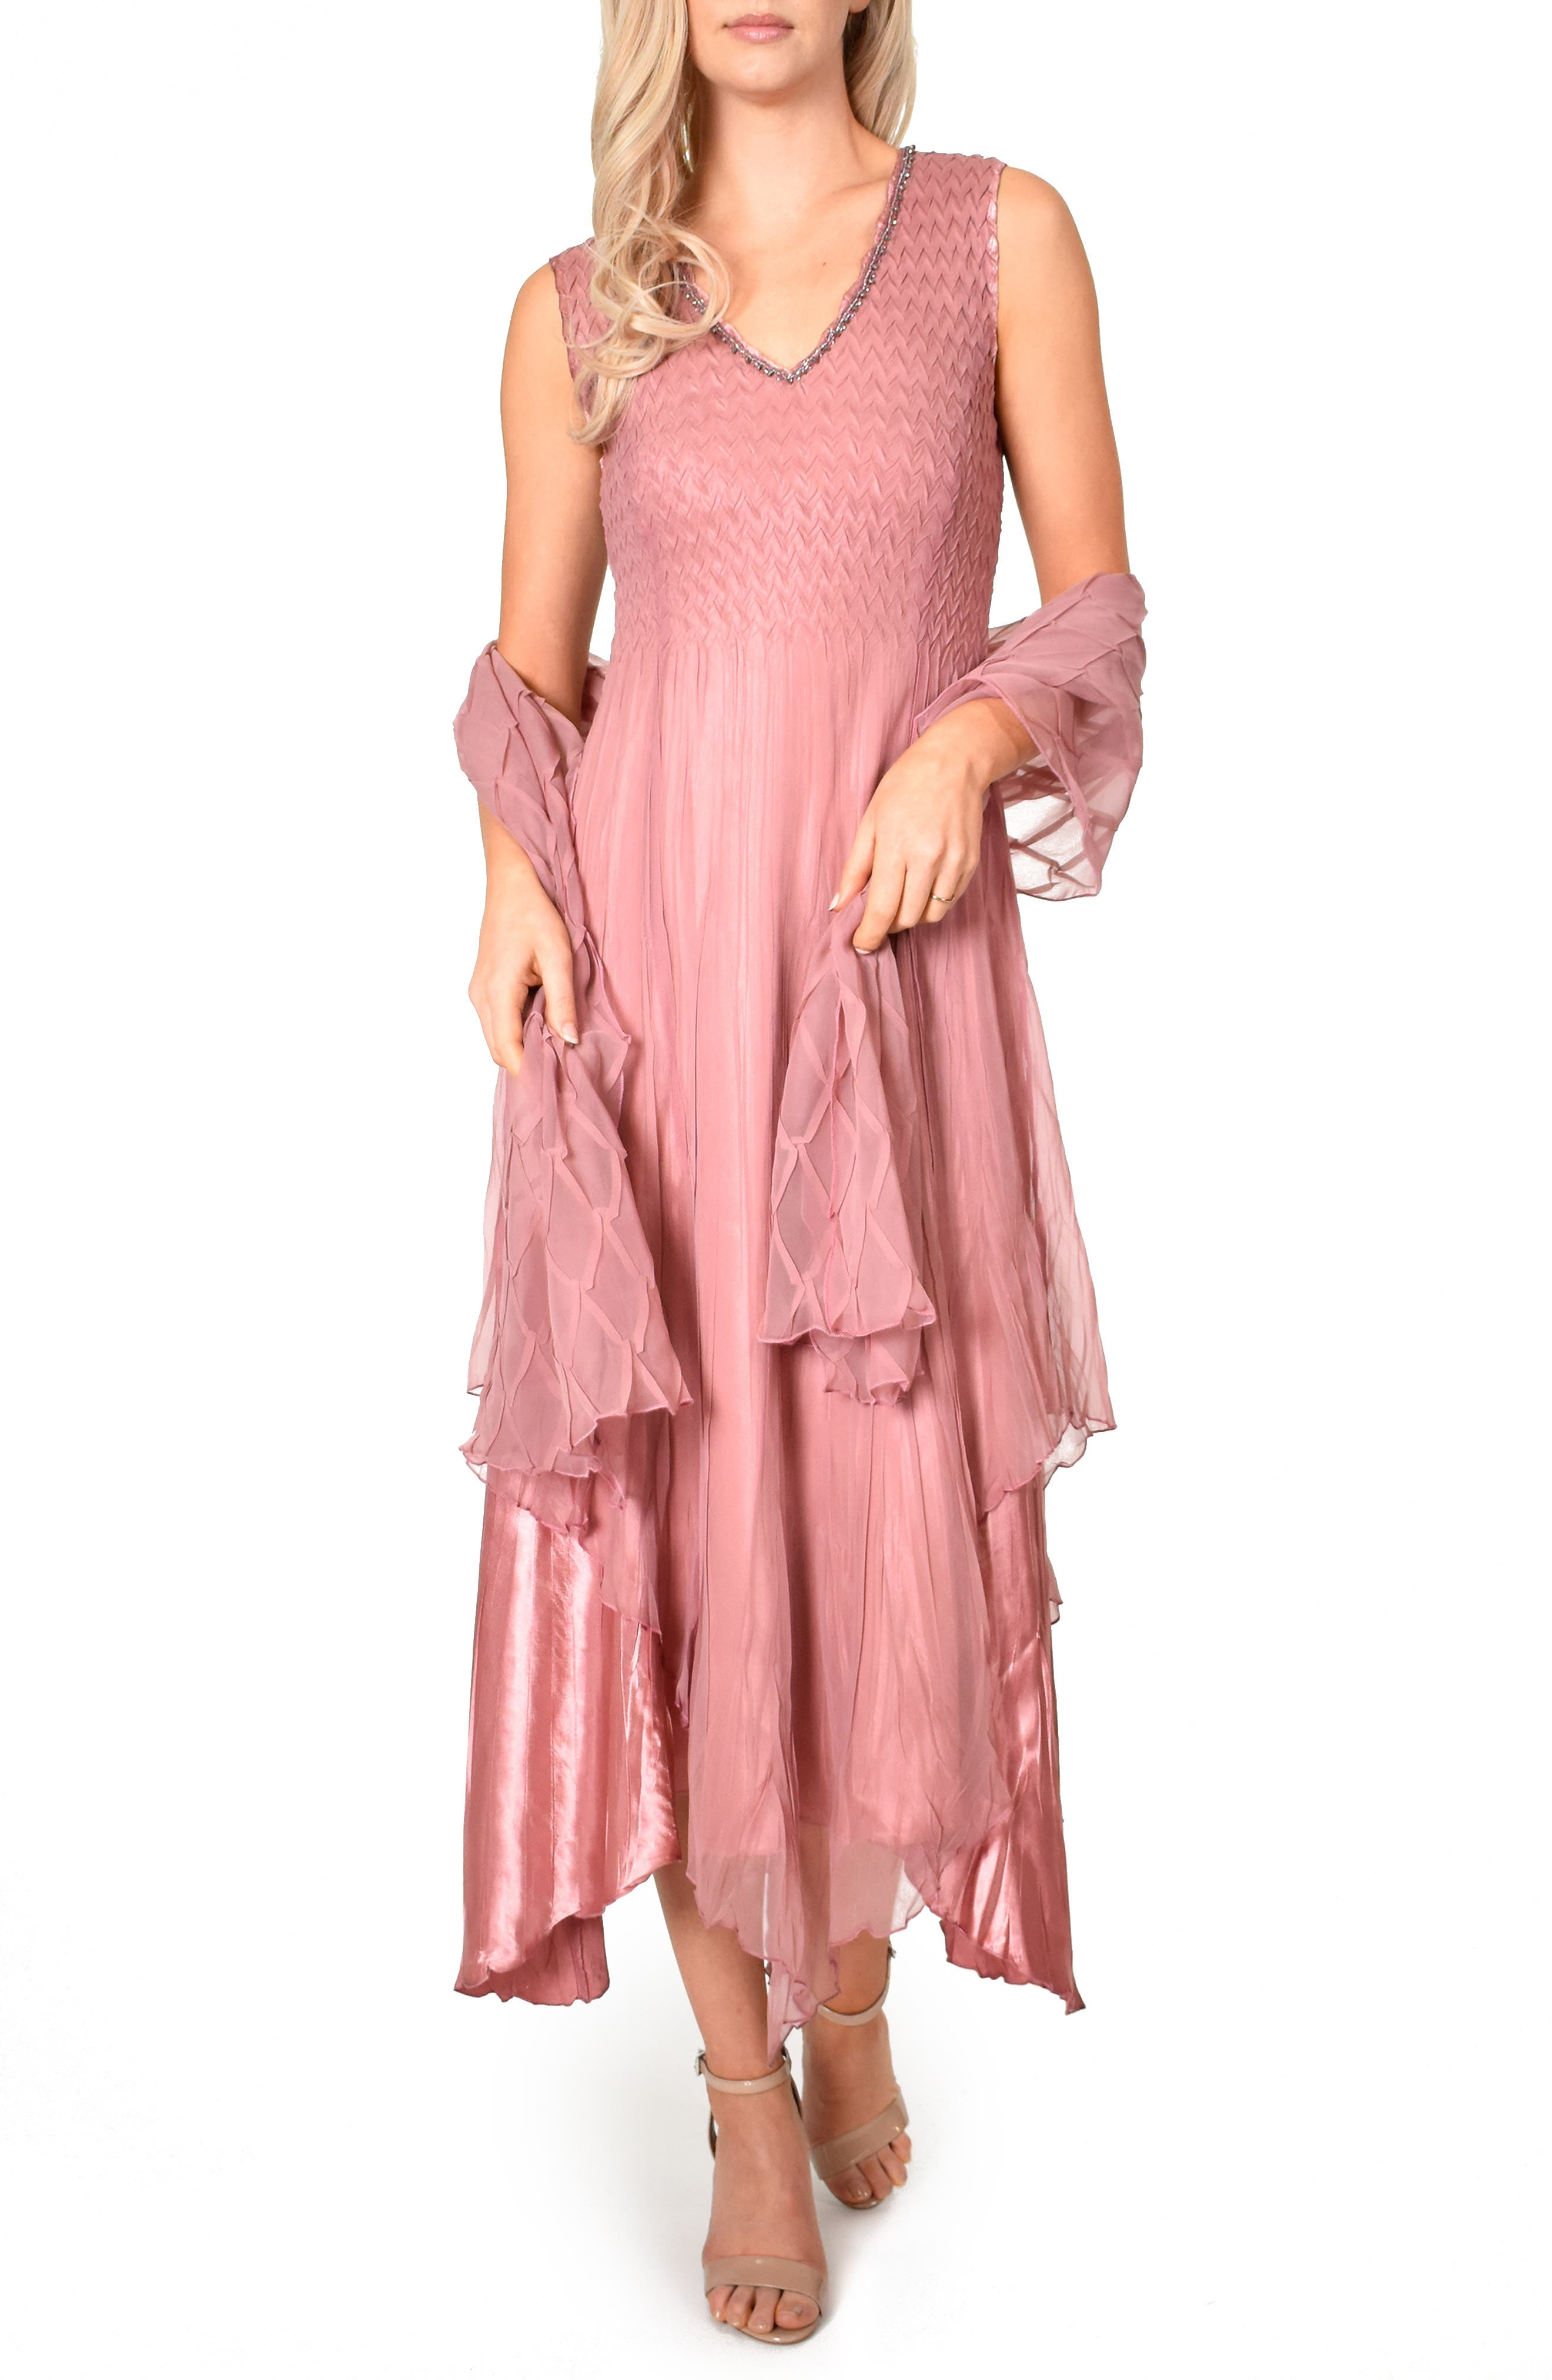 Petite Komarov New Chiffon Sleeveless Evening Dress With Shawl, Pink